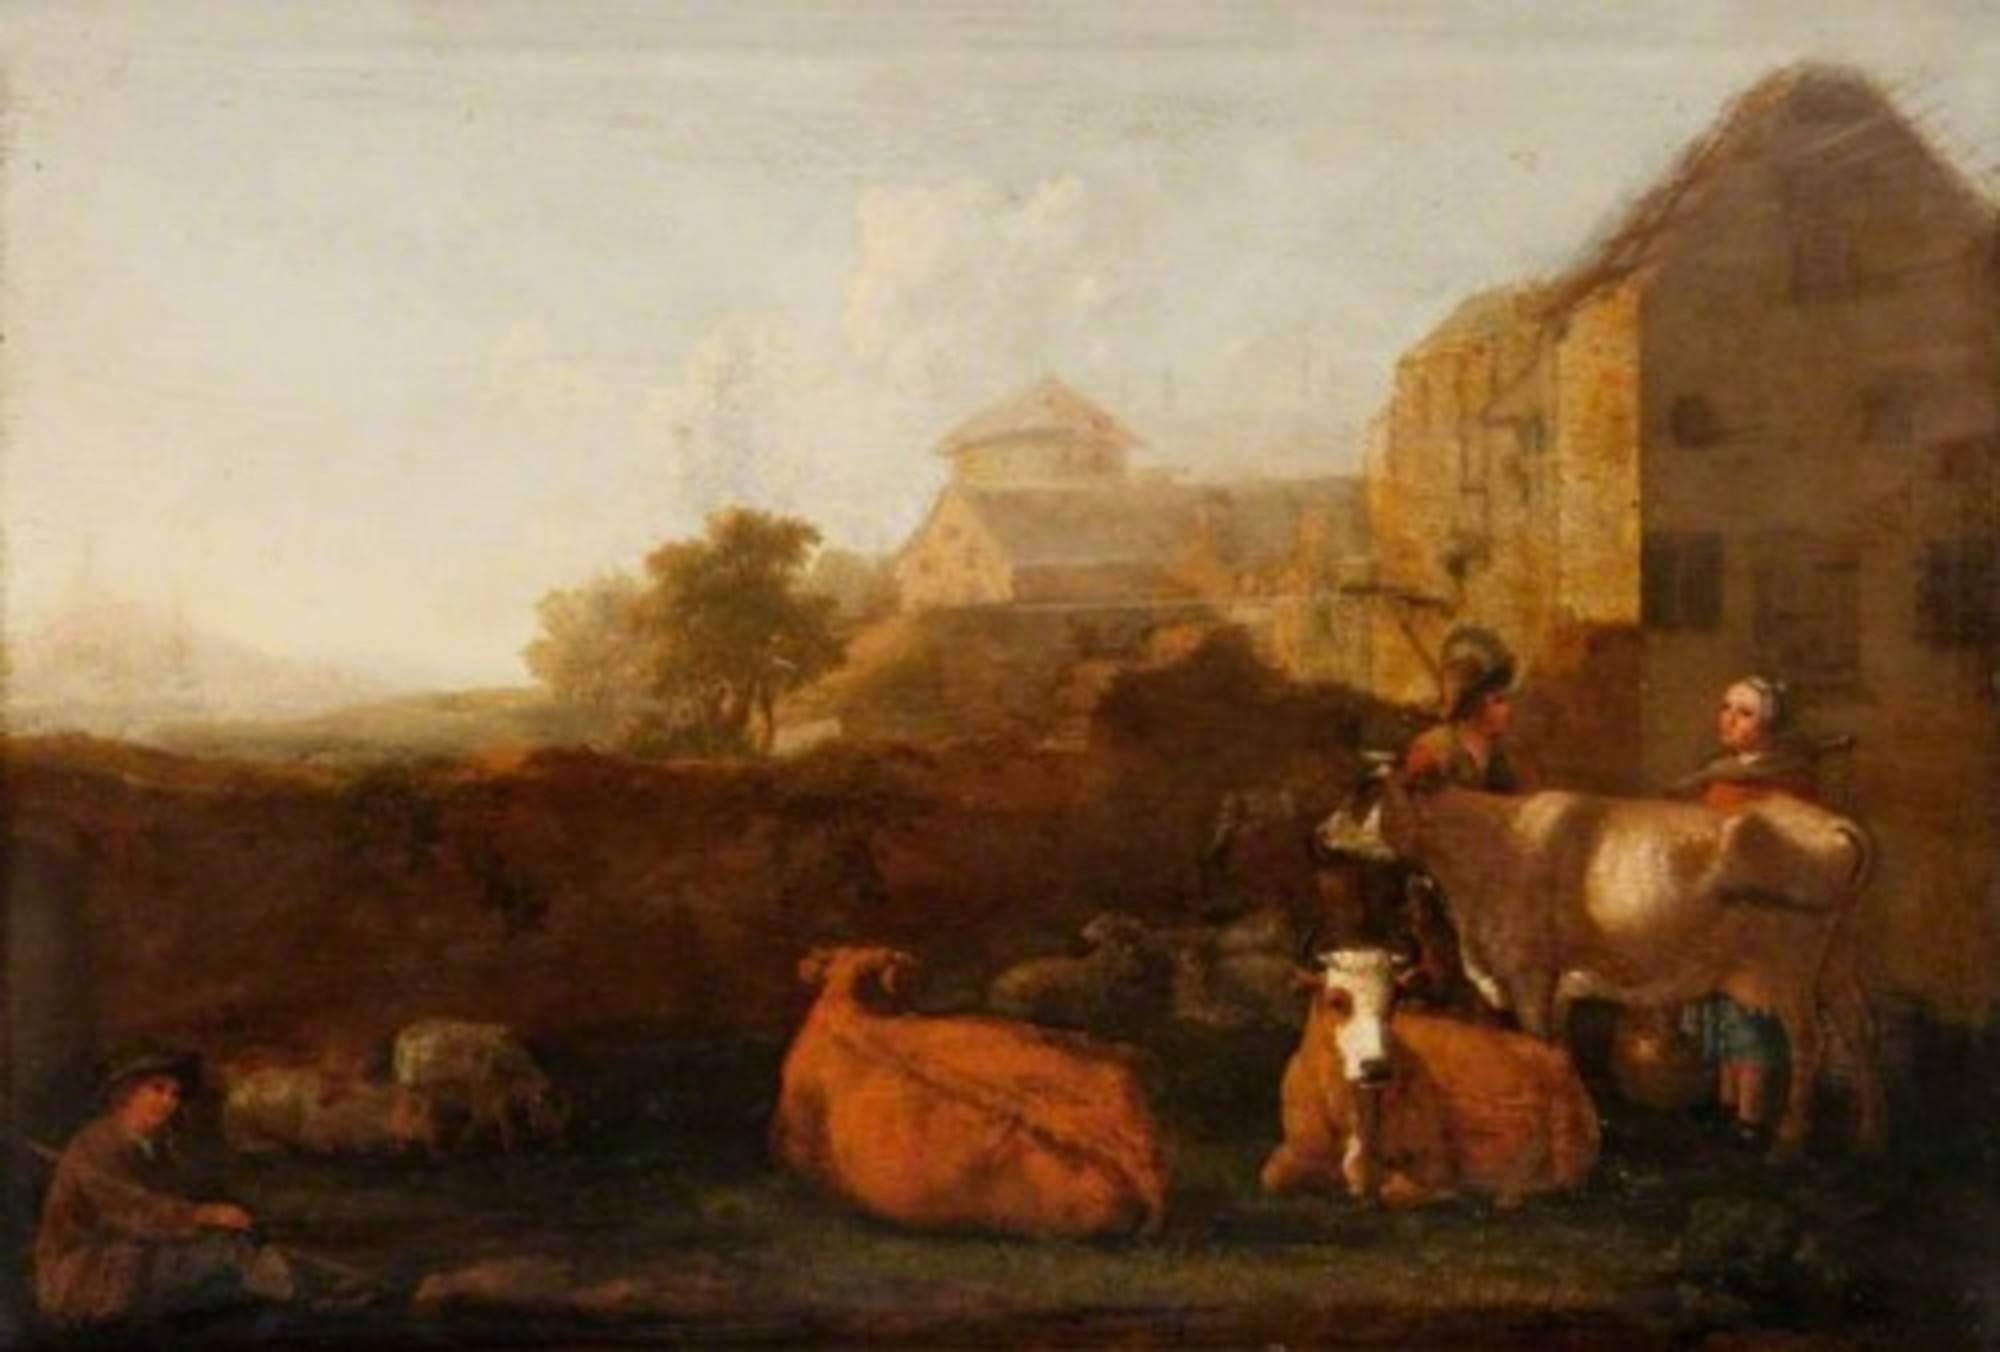 Aelbert-Cuyp---Landscape-with-Cattle-and-Figures-GL-GM-574.jpg